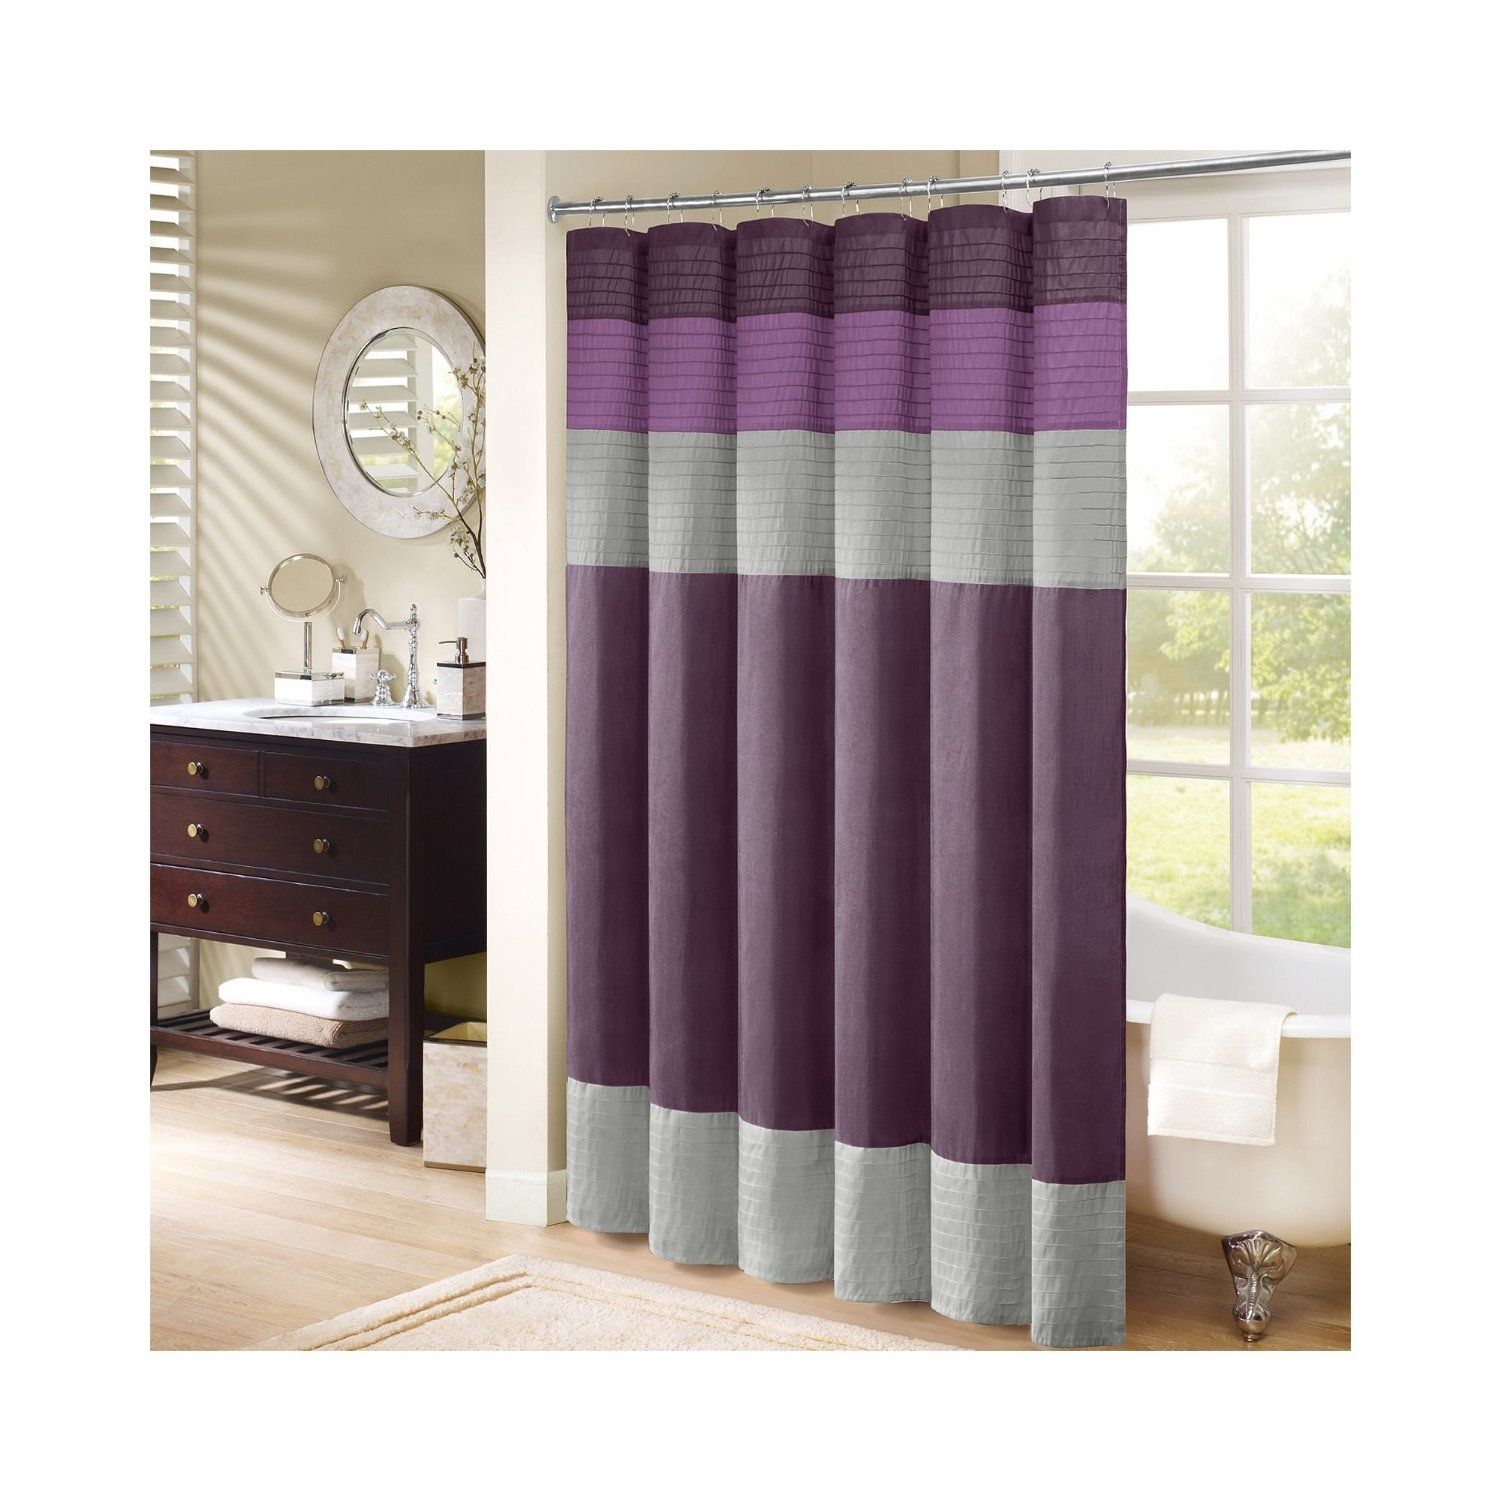 Green hookless shower curtain - Green Hookless Shower Curtain Gray Shower Curtain Fabric 17 Best Images About Curtains From Amazon